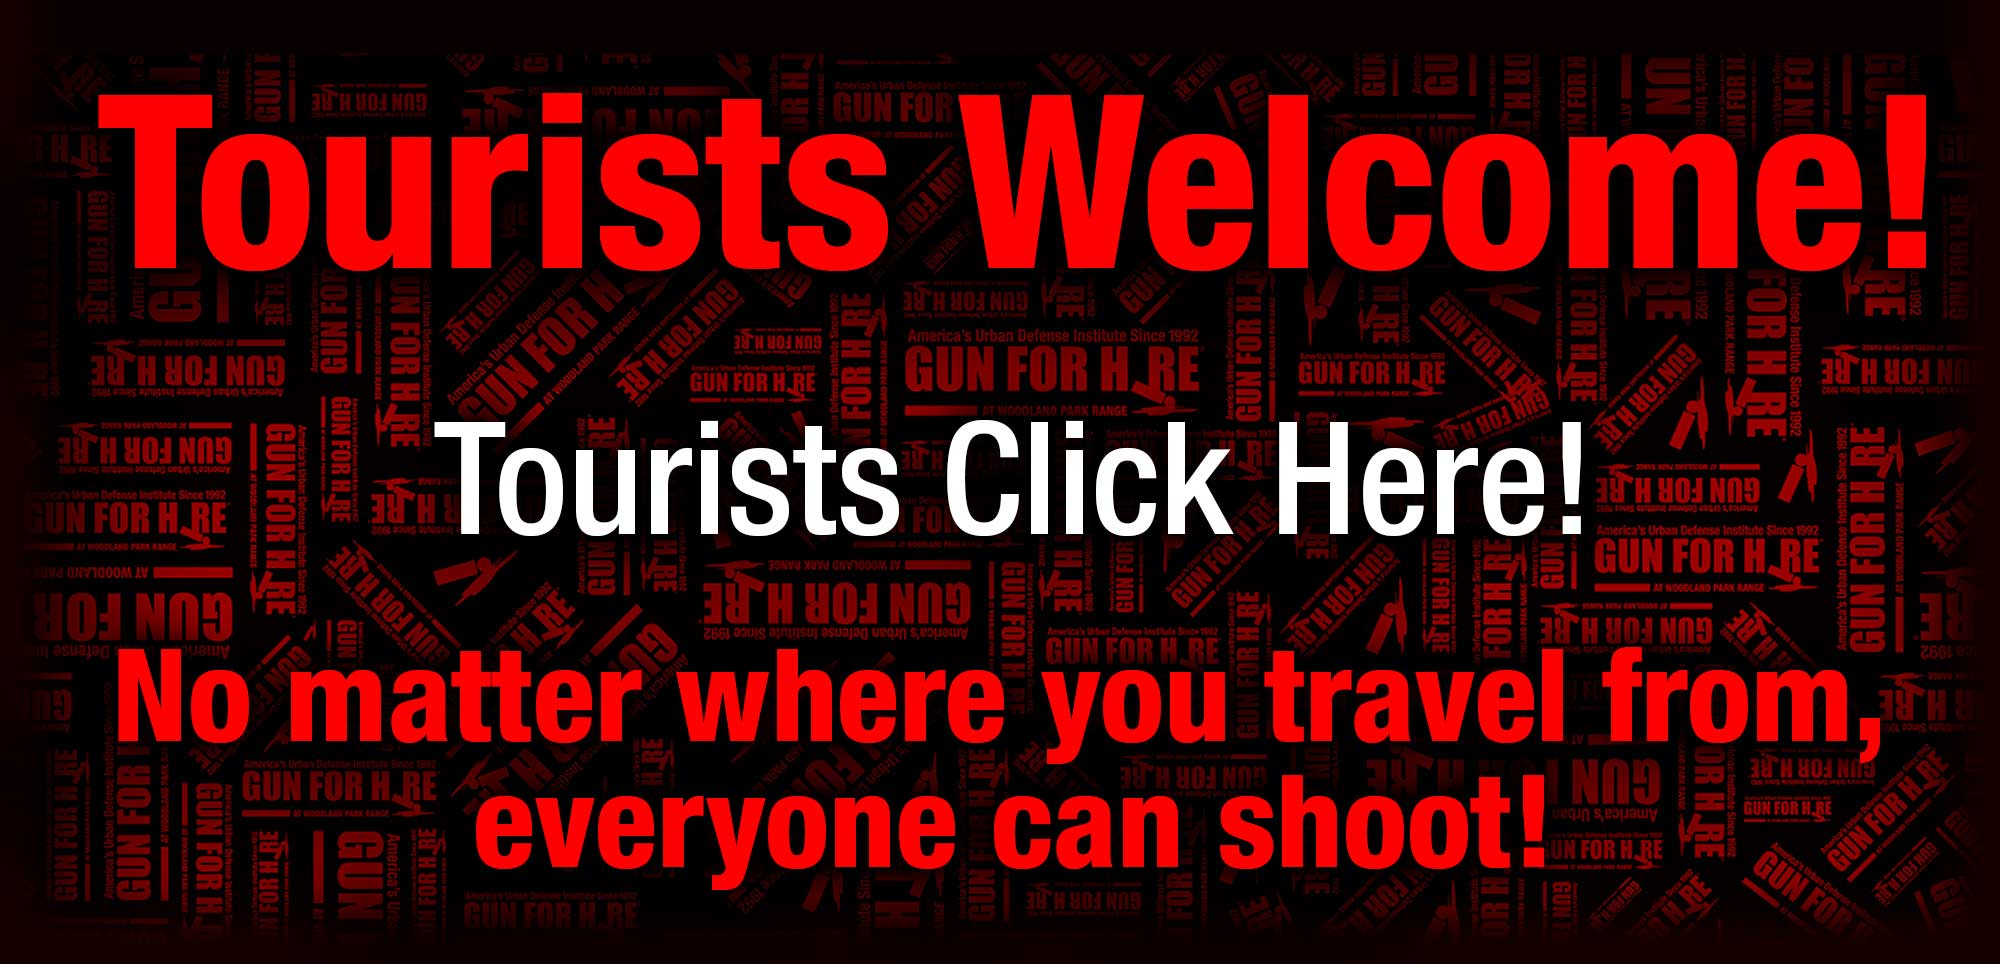 Welcome Tourist 1 - shooting range nyc